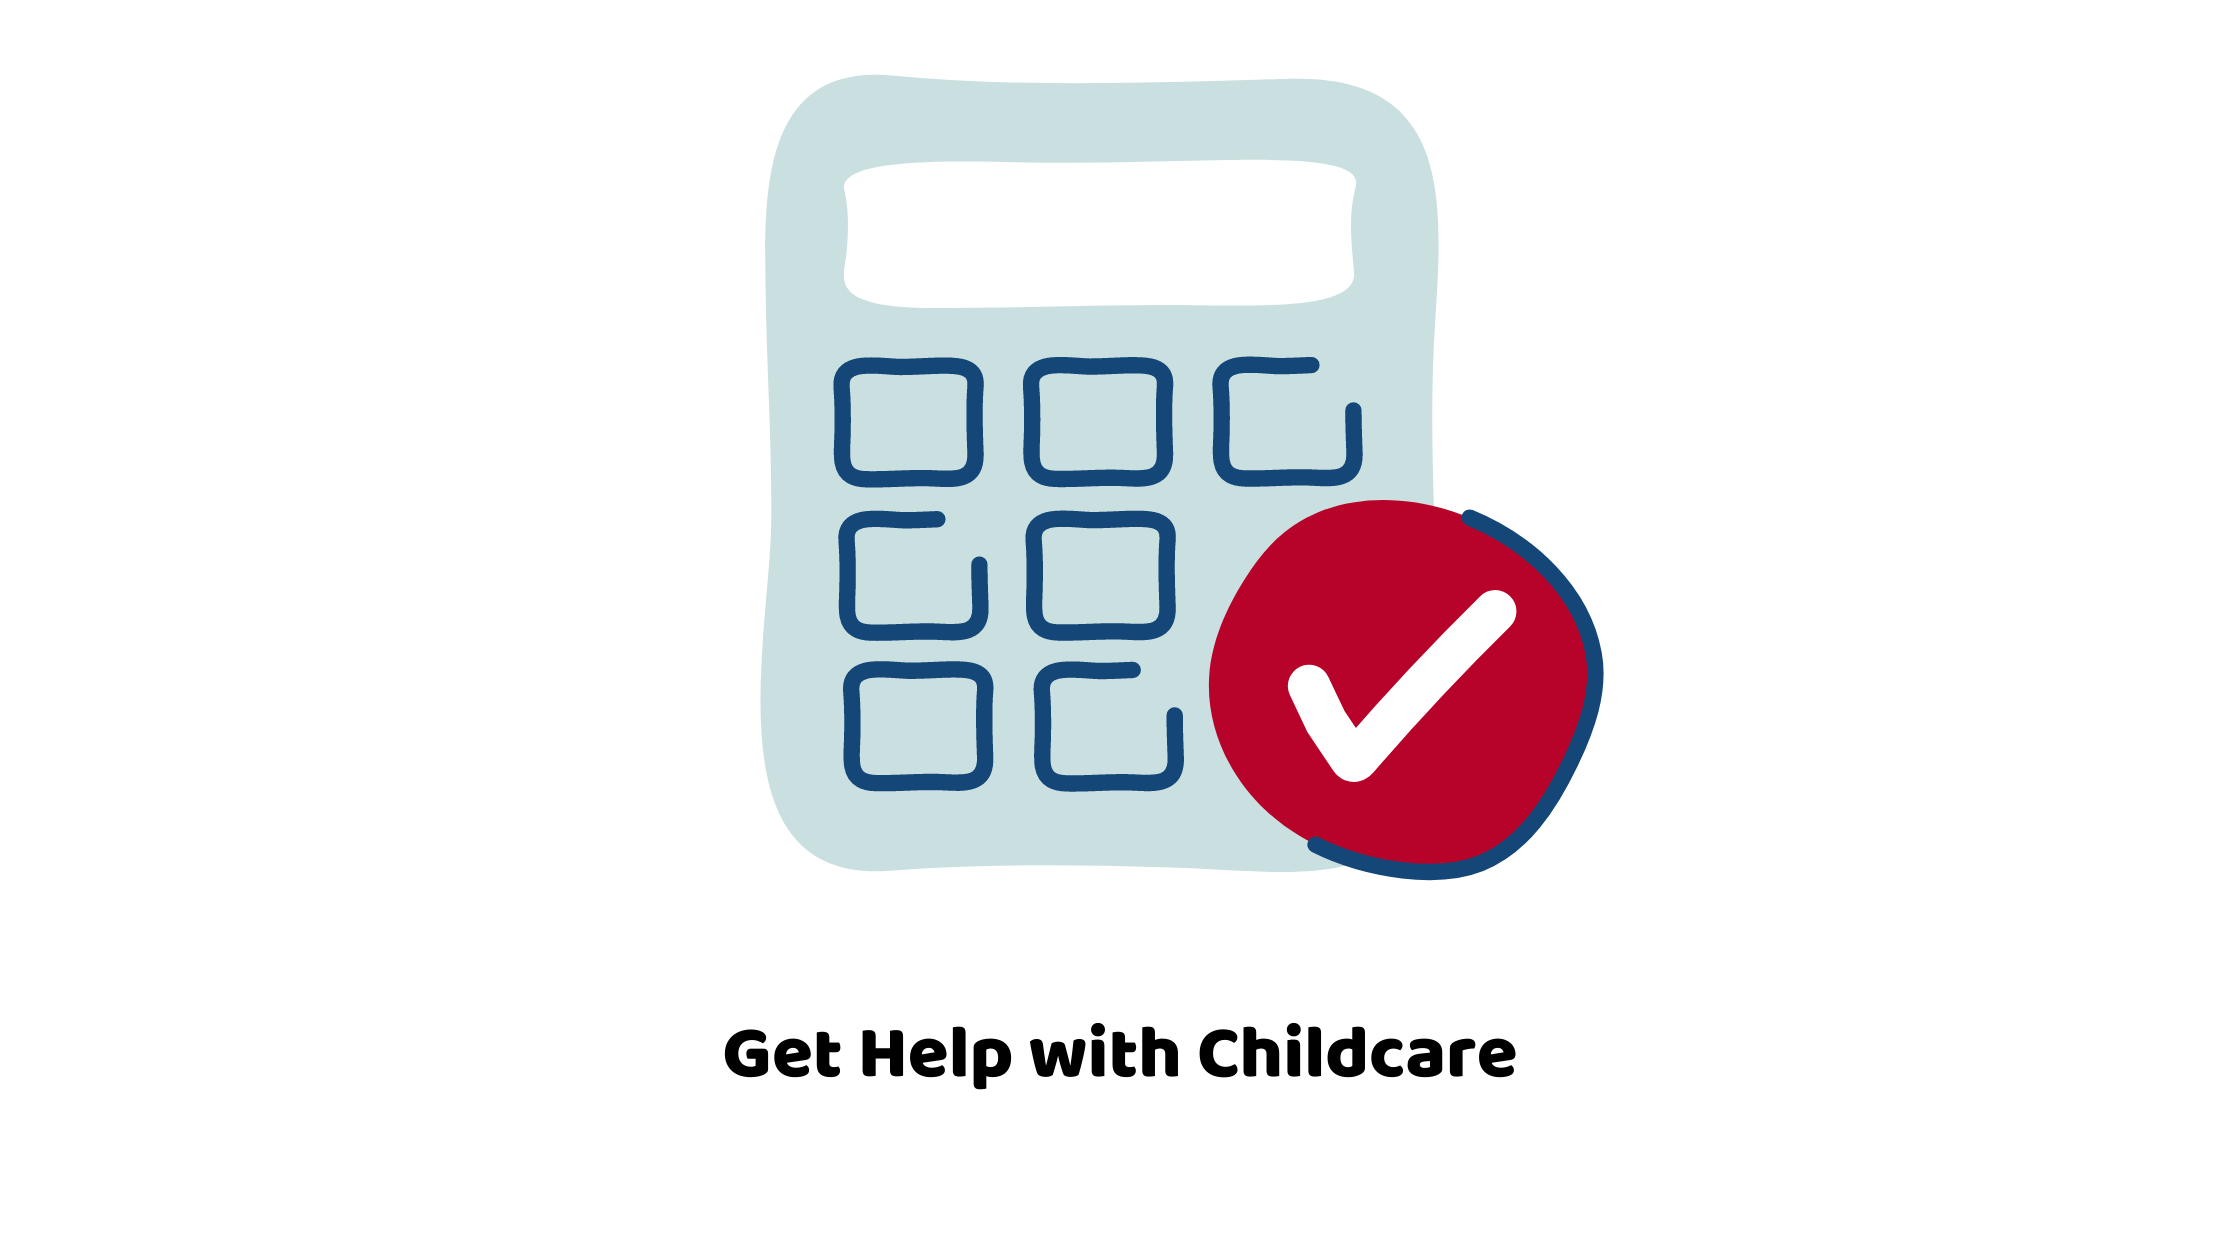 Get Help with Childcare